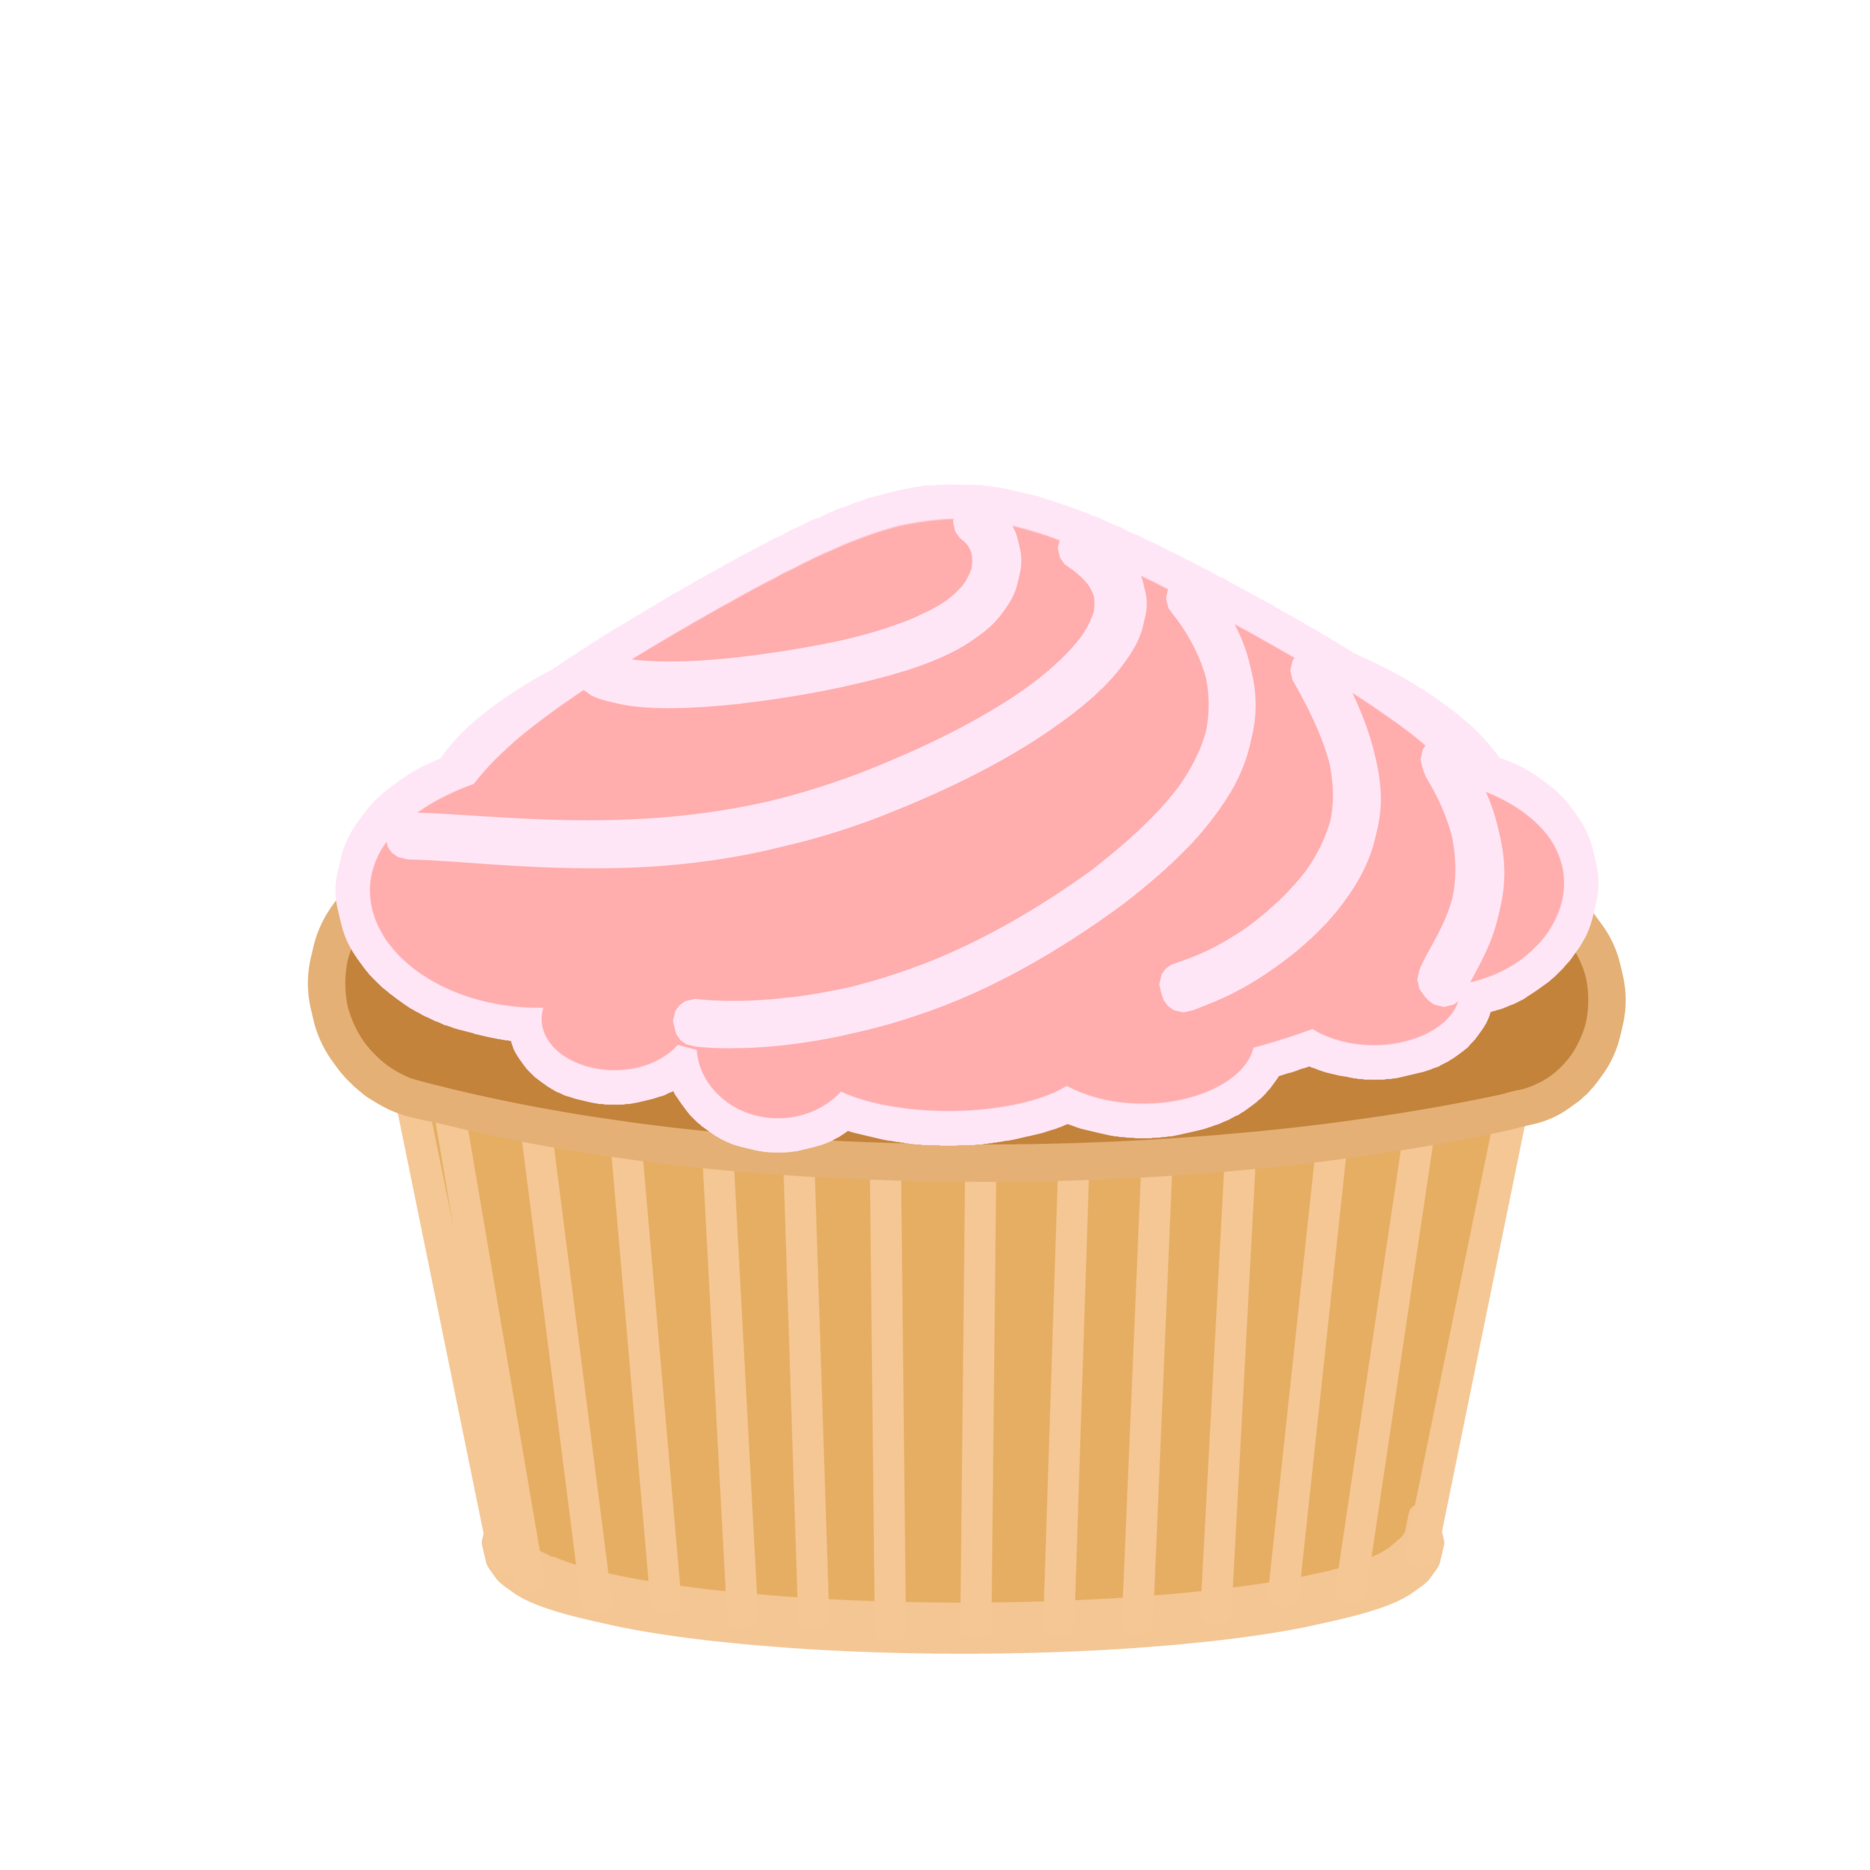 Pink swirl cupcake by. Desserts clipart animation